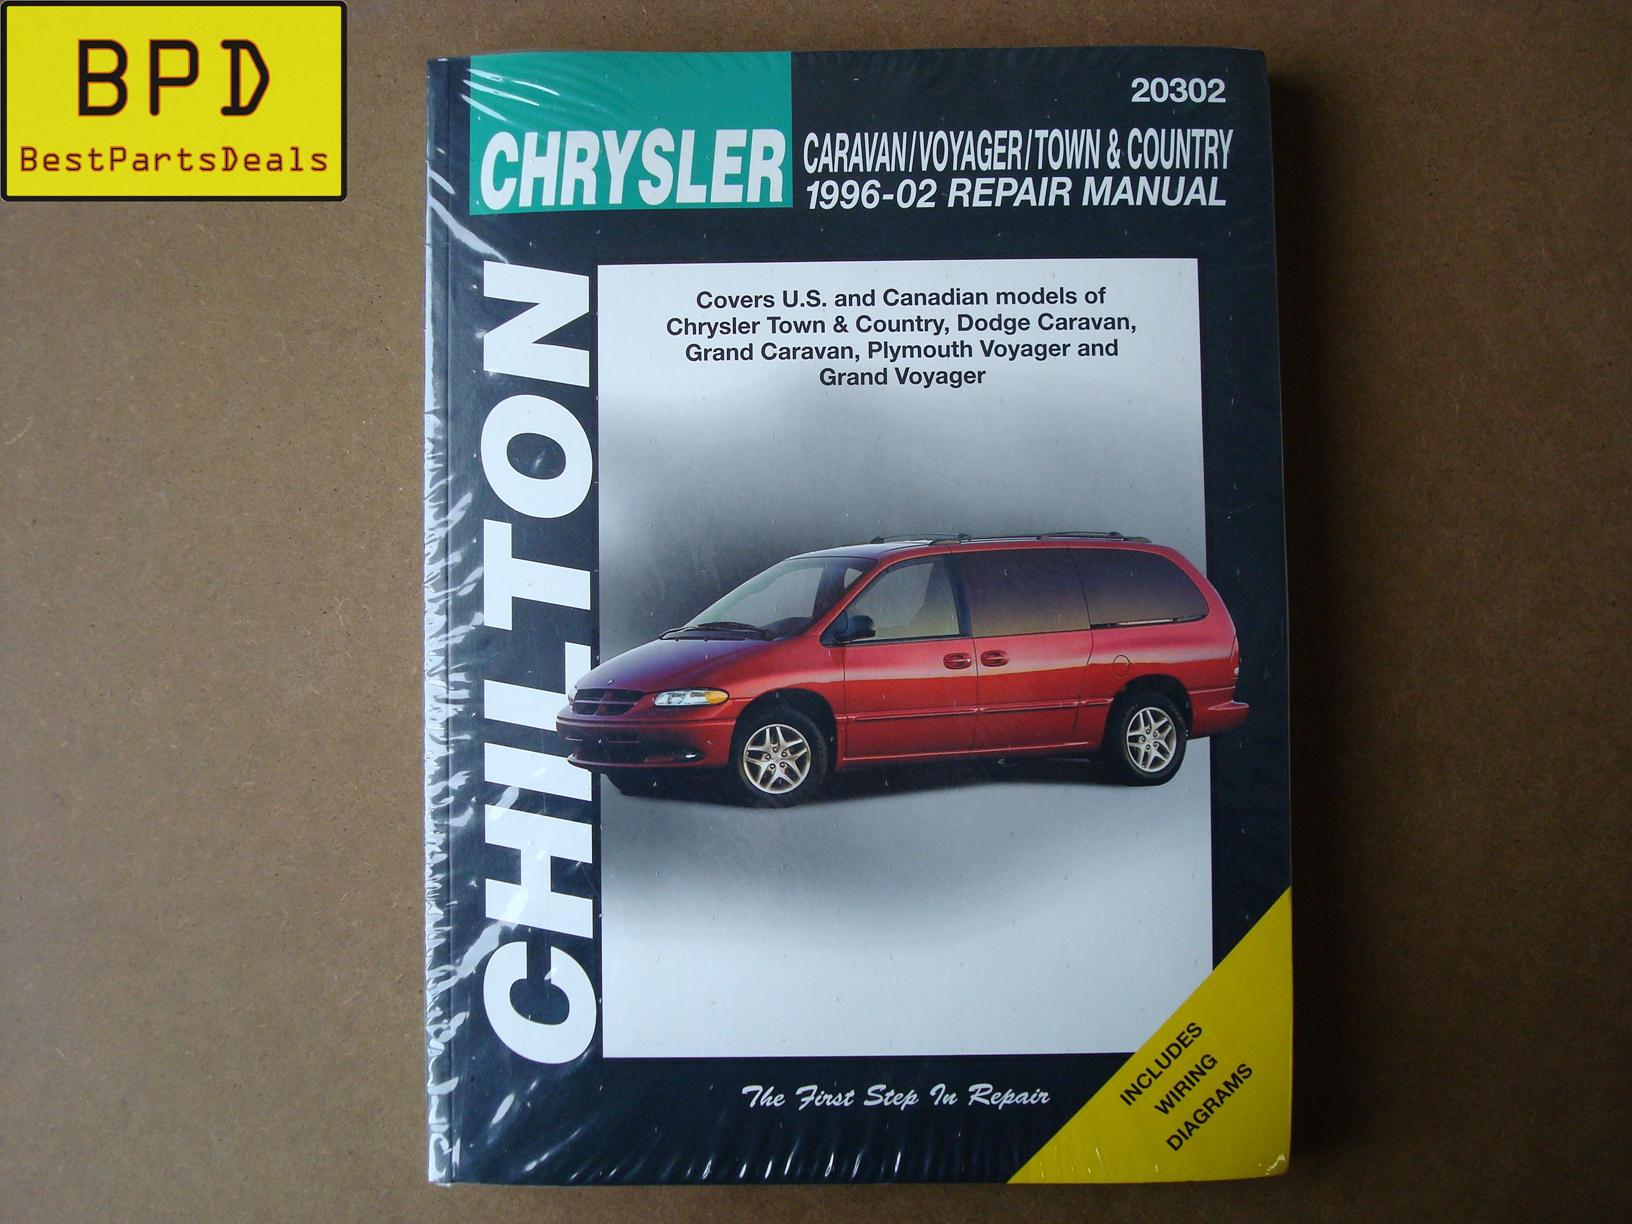 chilton 96 02 chrysler caravan voyager town country repair manual rh ebay  com 1988 Plymouth Voyager Plymouth Voyager Custom